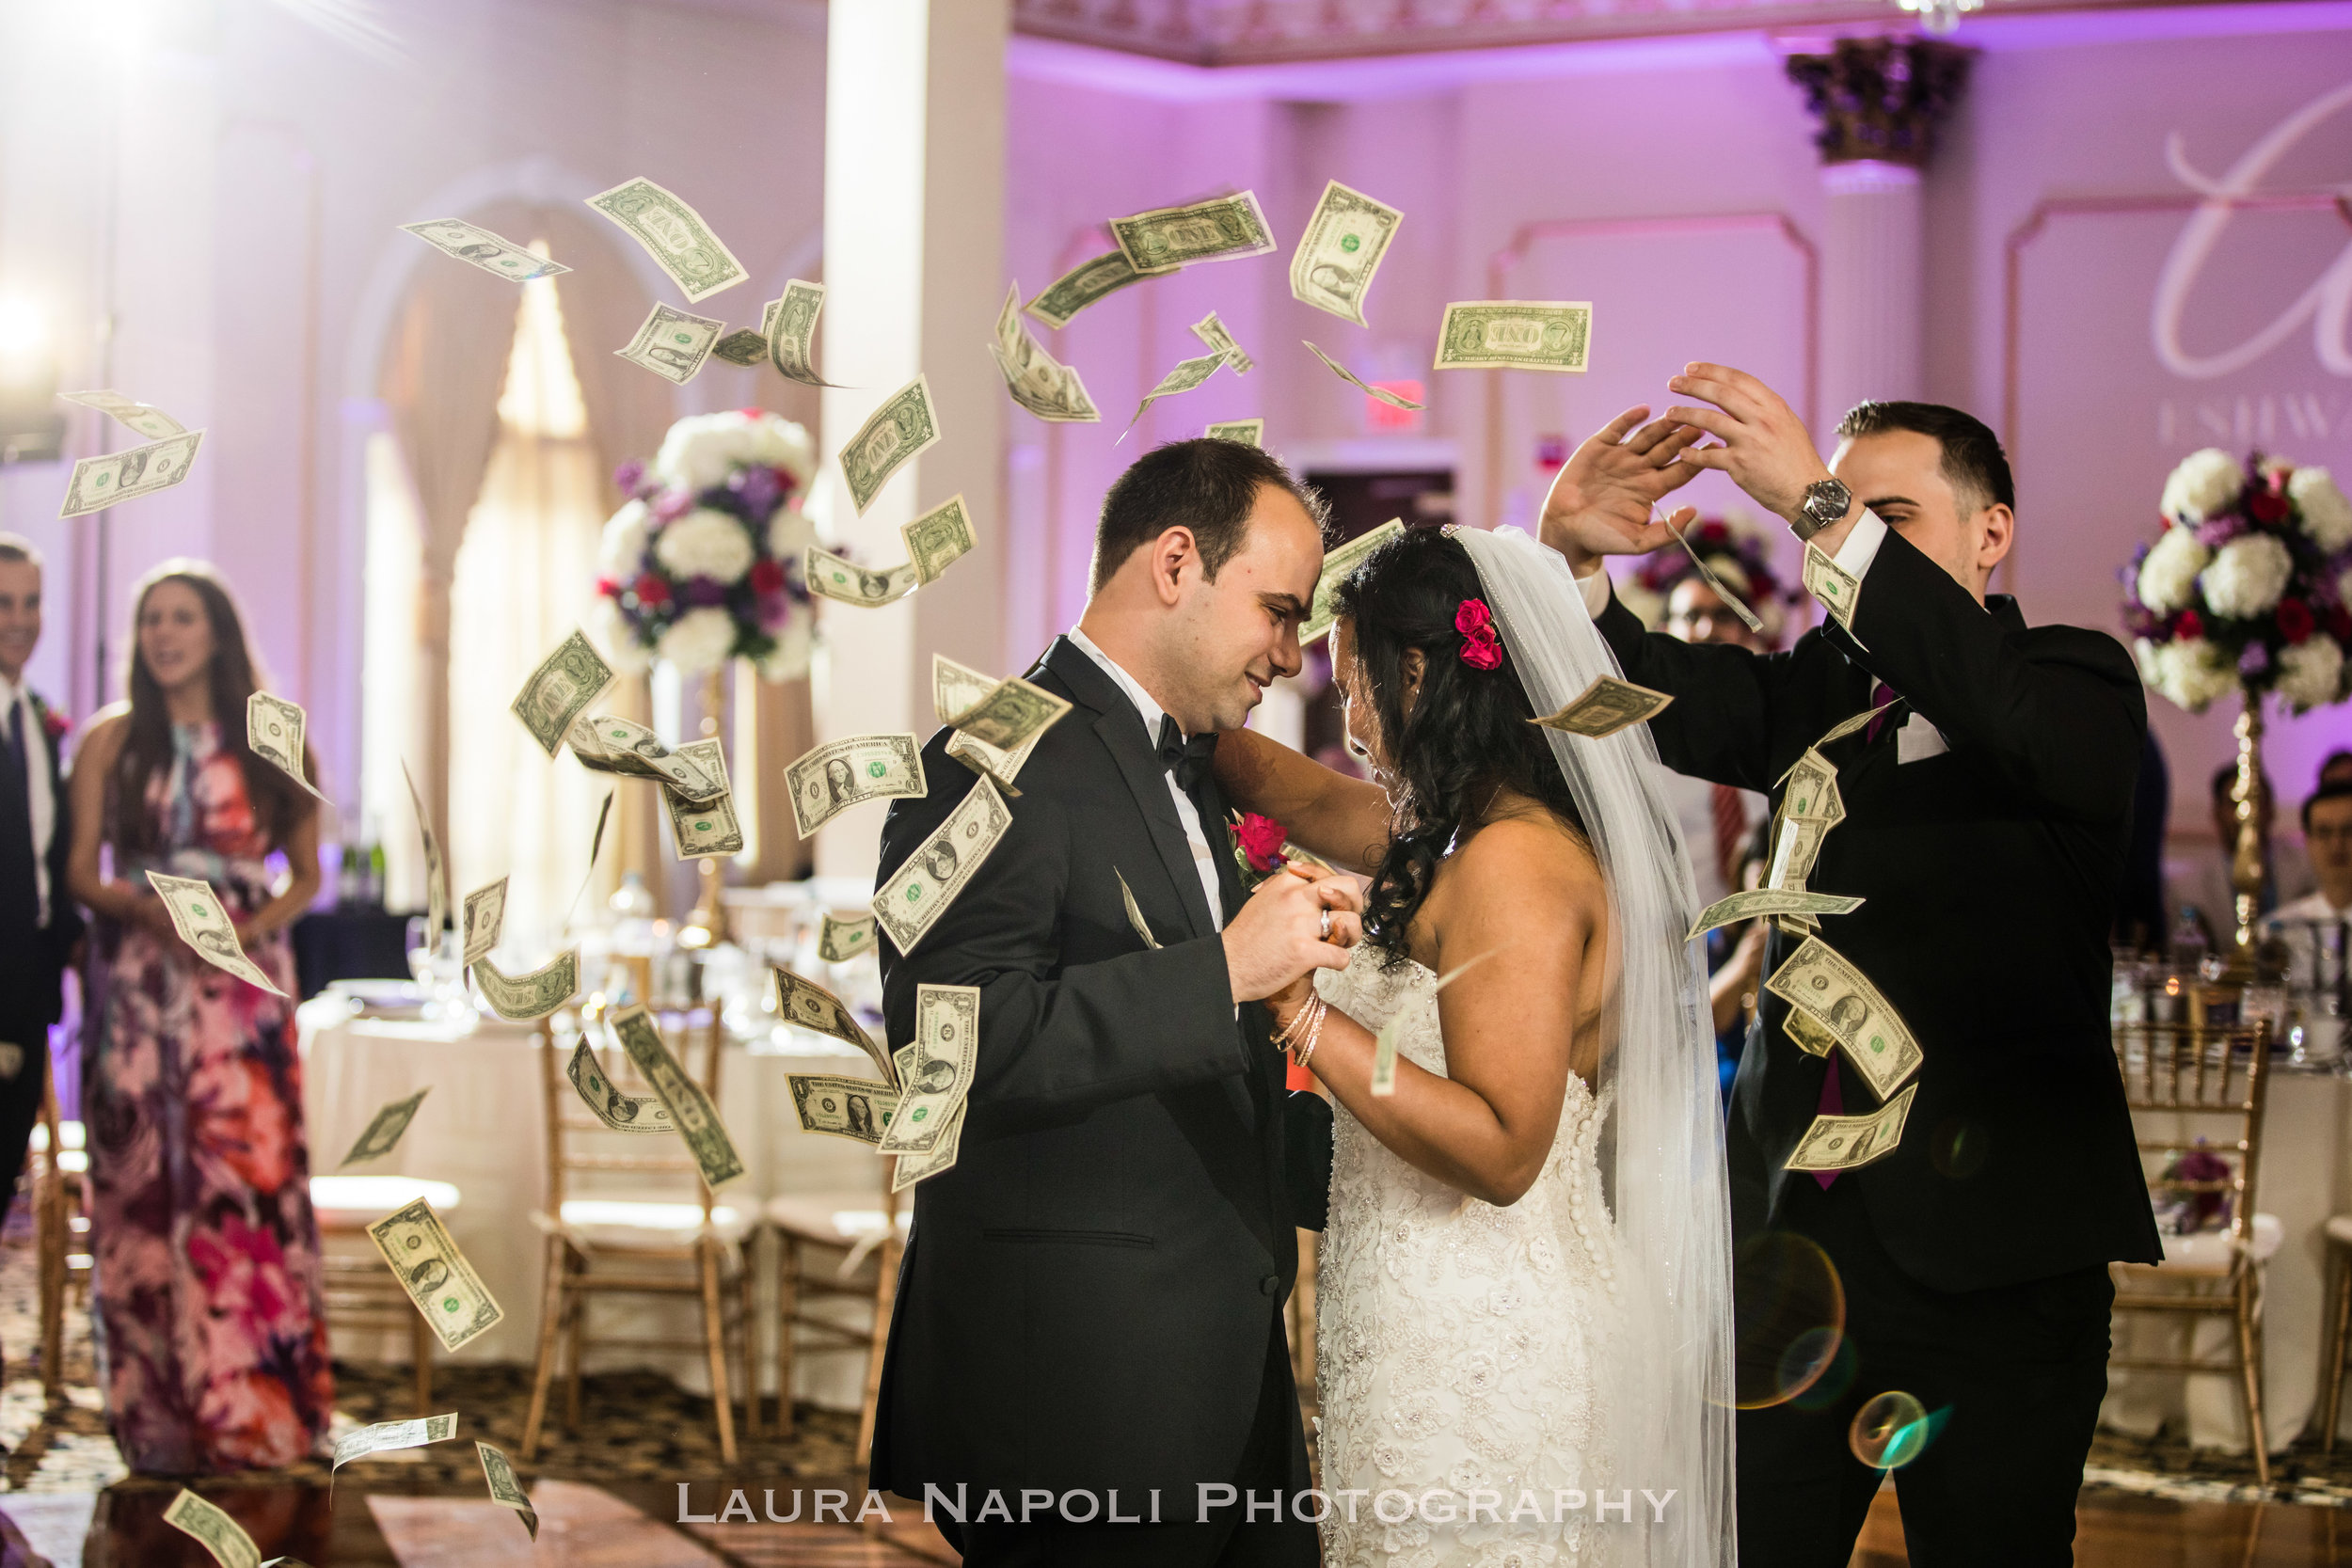 Scotlandrungolfclubweddingsouthjerseyweddingphotographer -32.jpg